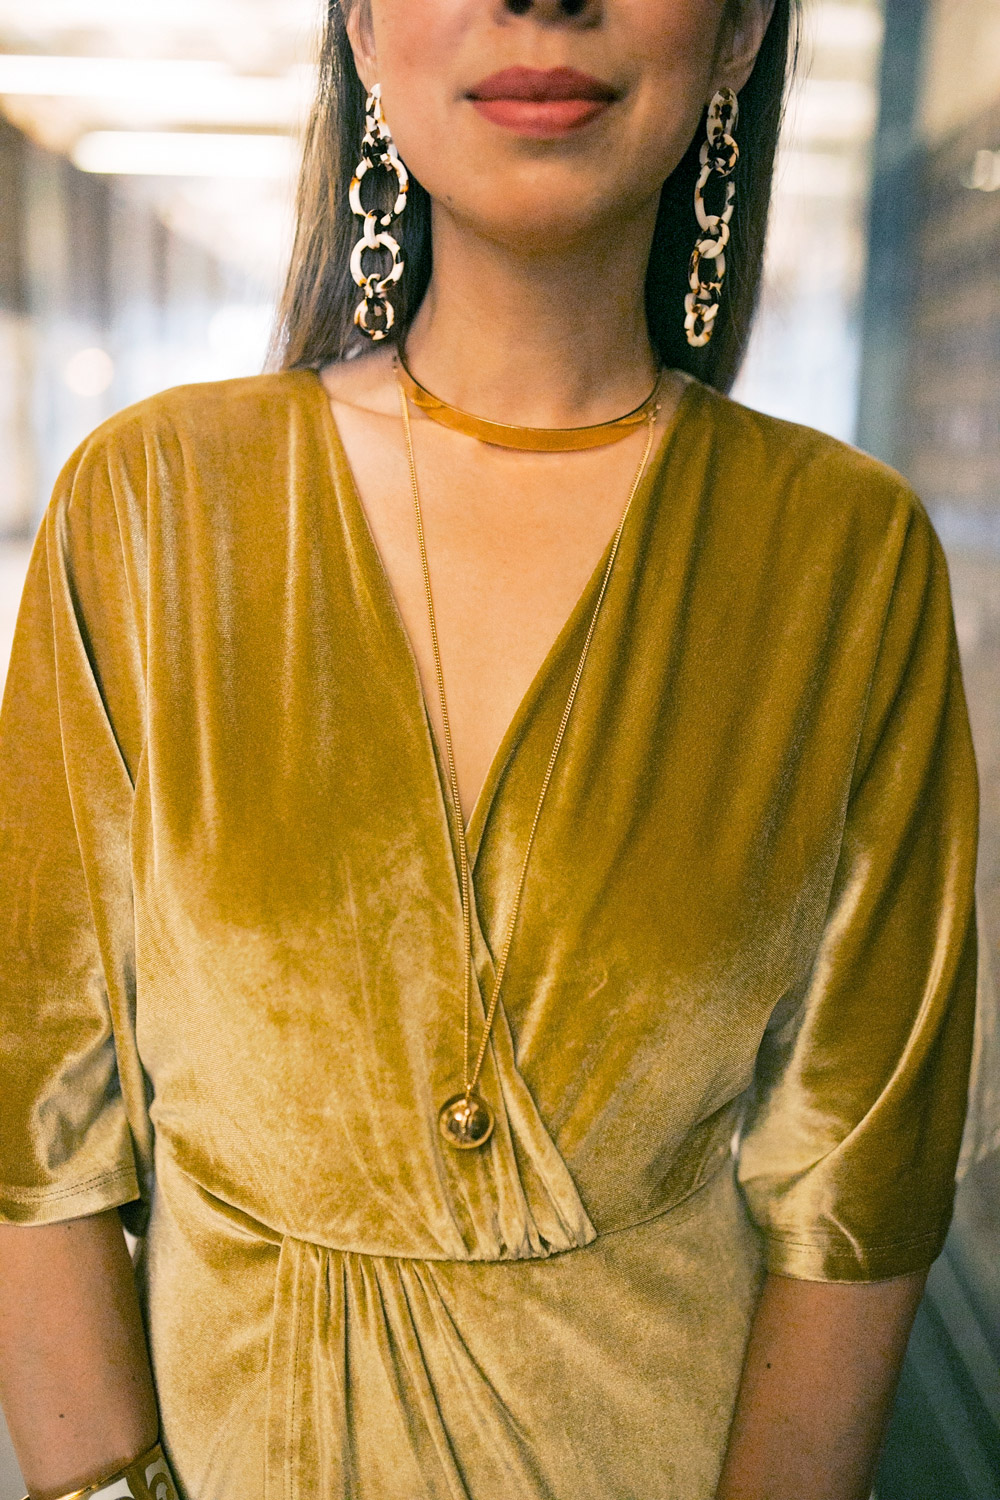 gold velvet dress lele sadoughi windchime earrings choker necklace